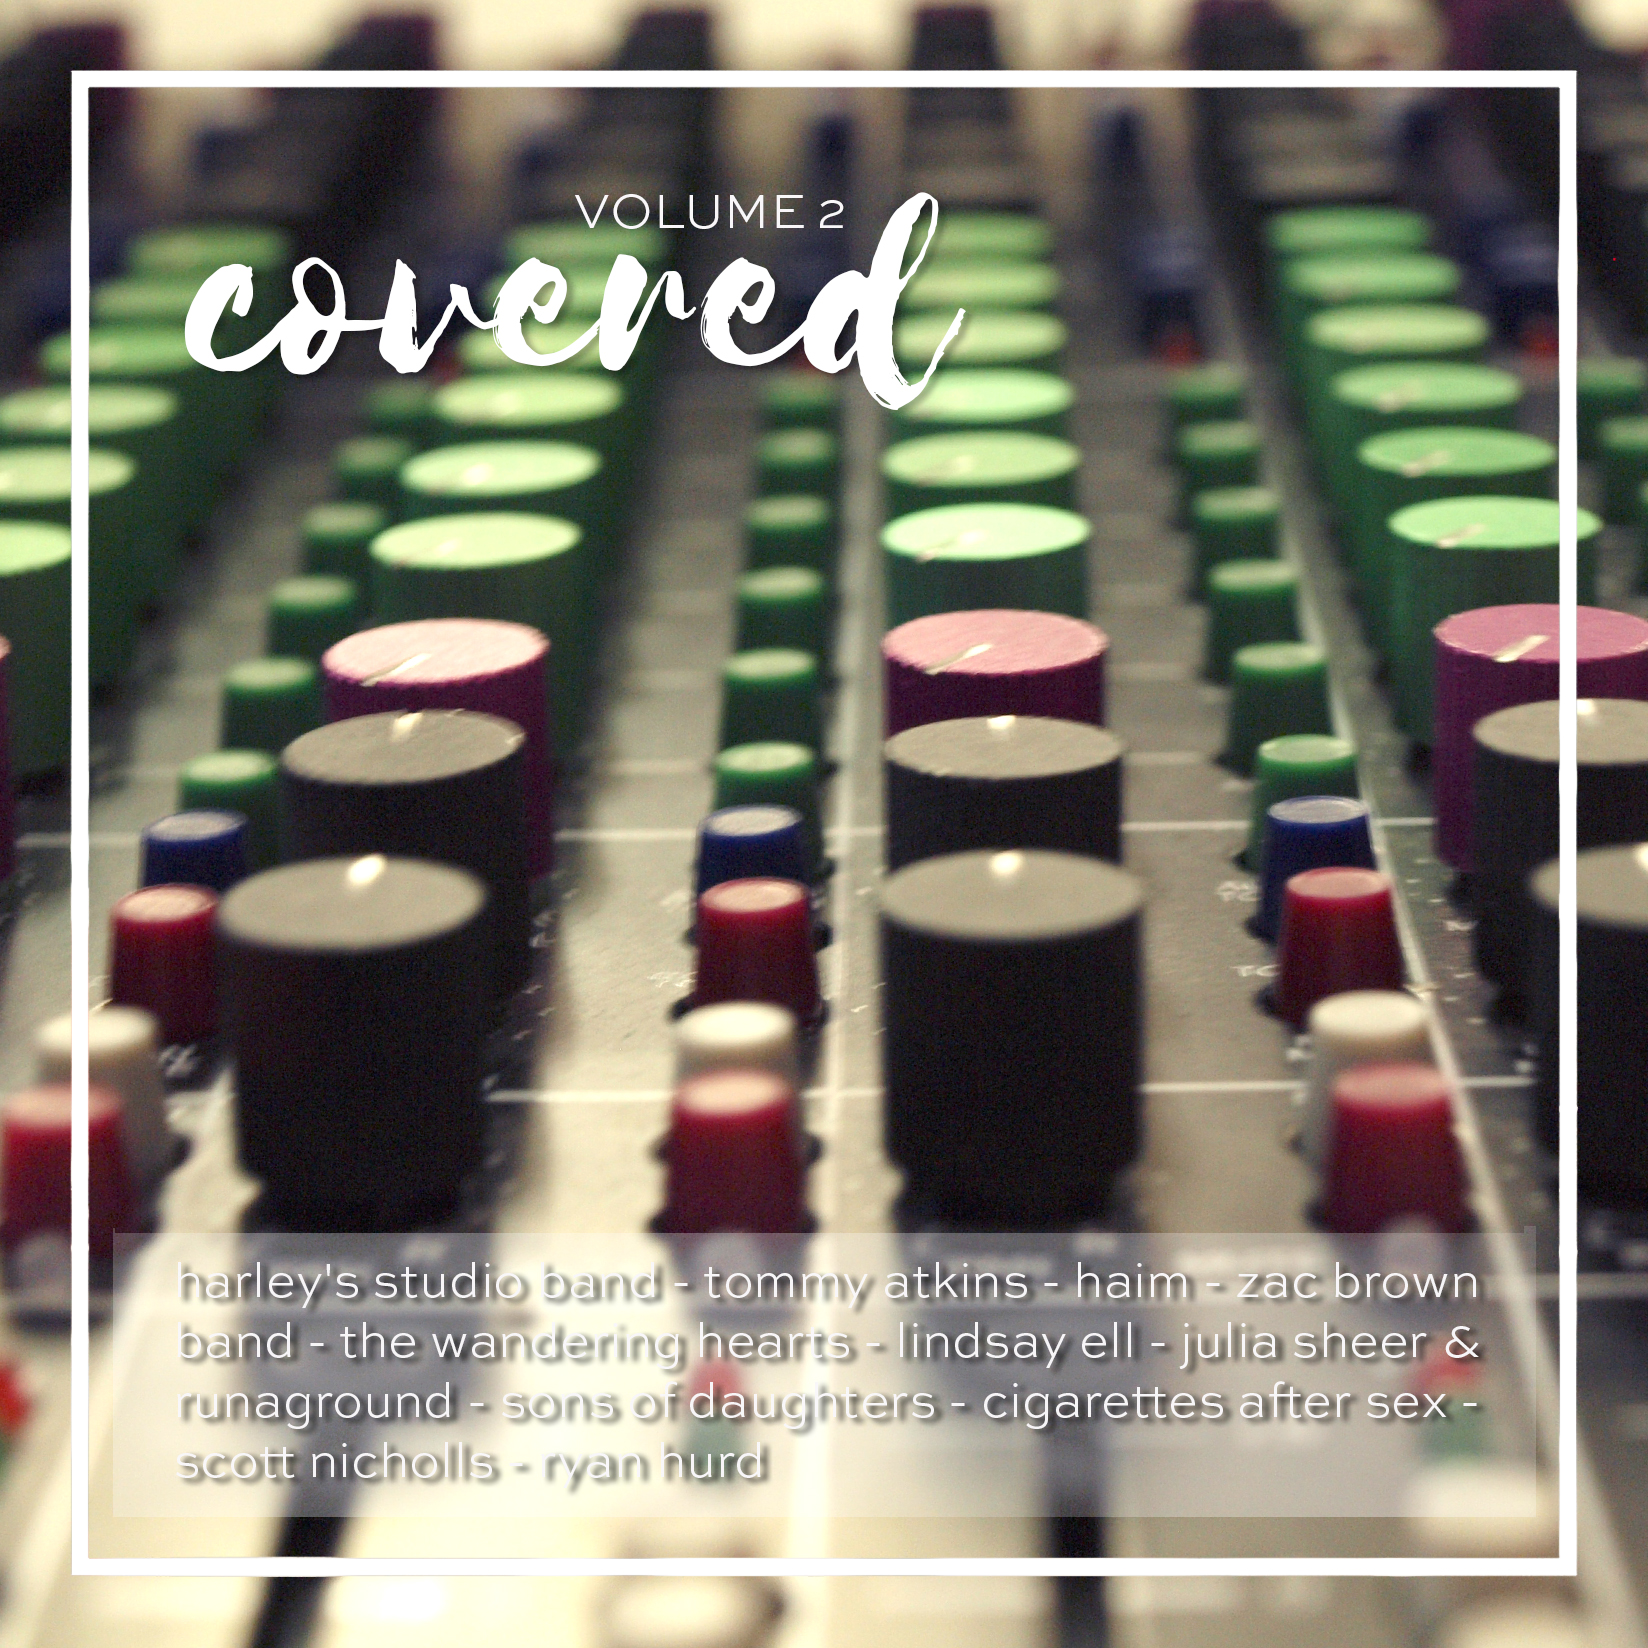 Weekly playlist 16 - covered vol 2